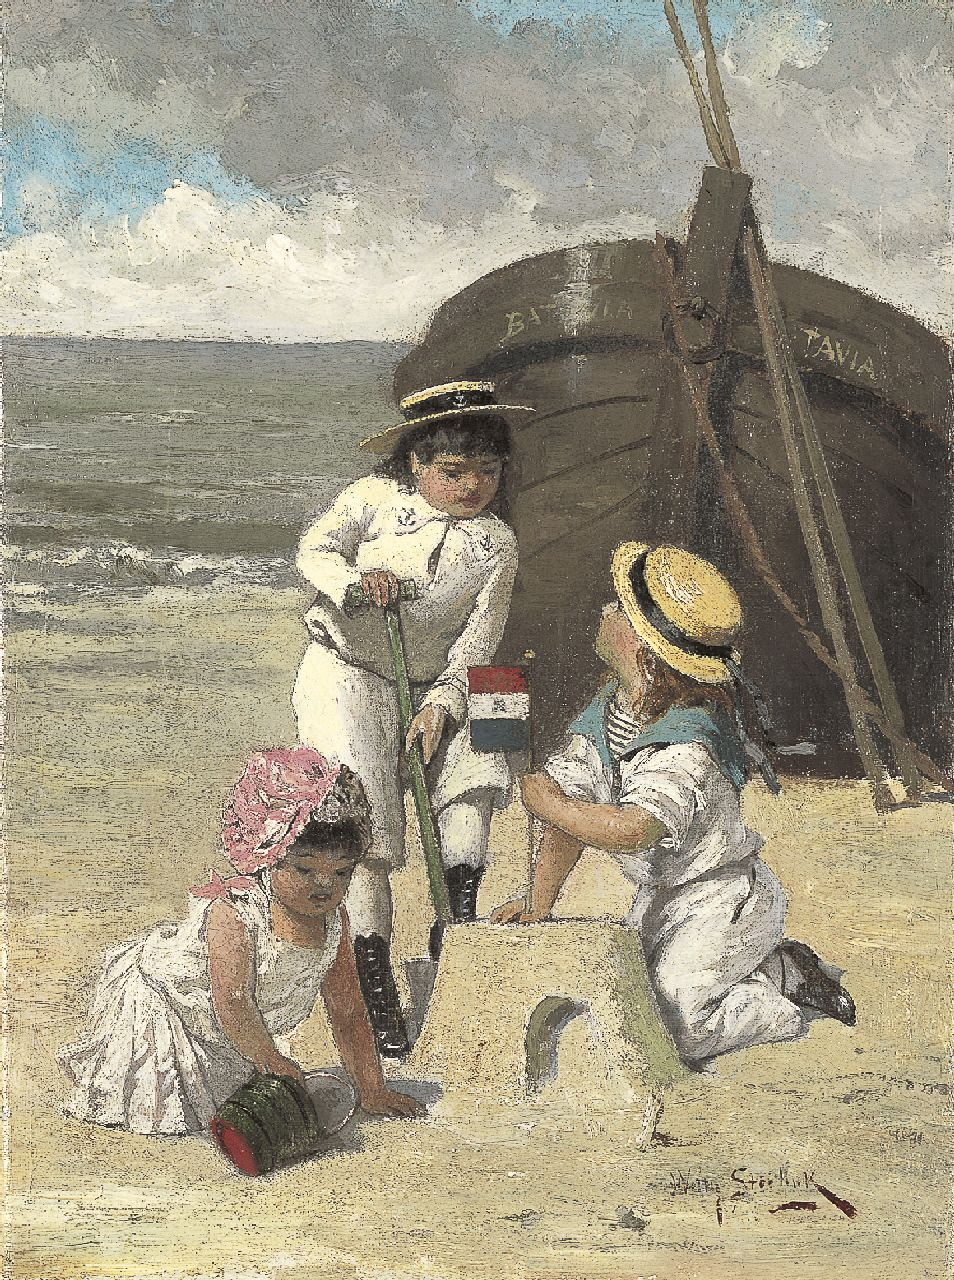 Steelink jr. W.  | Willem Steelink jr., Children playing on the beach, oil on canvas 28.3 x 20.9 cm, signed l.r.